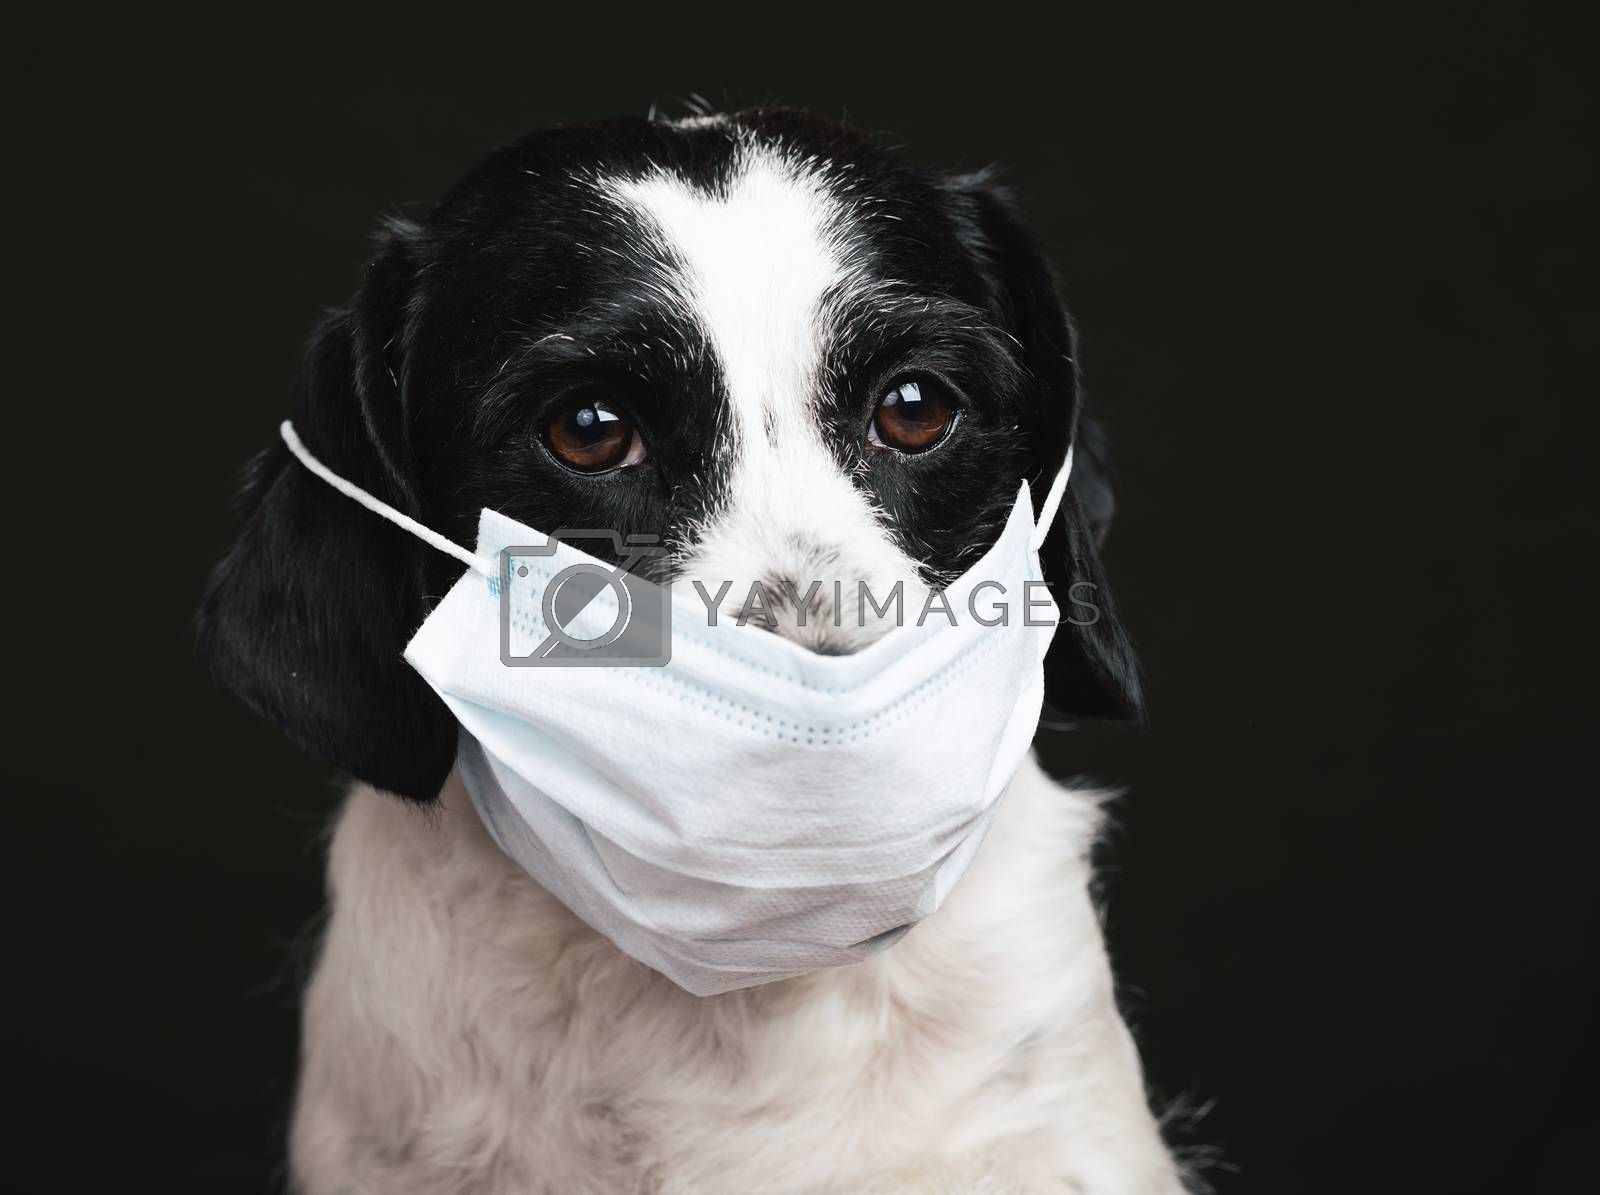 Portrait of a dog wearing protective surgical mask - basic protective measures against transmission of coronavirus COVID-19 disease concept